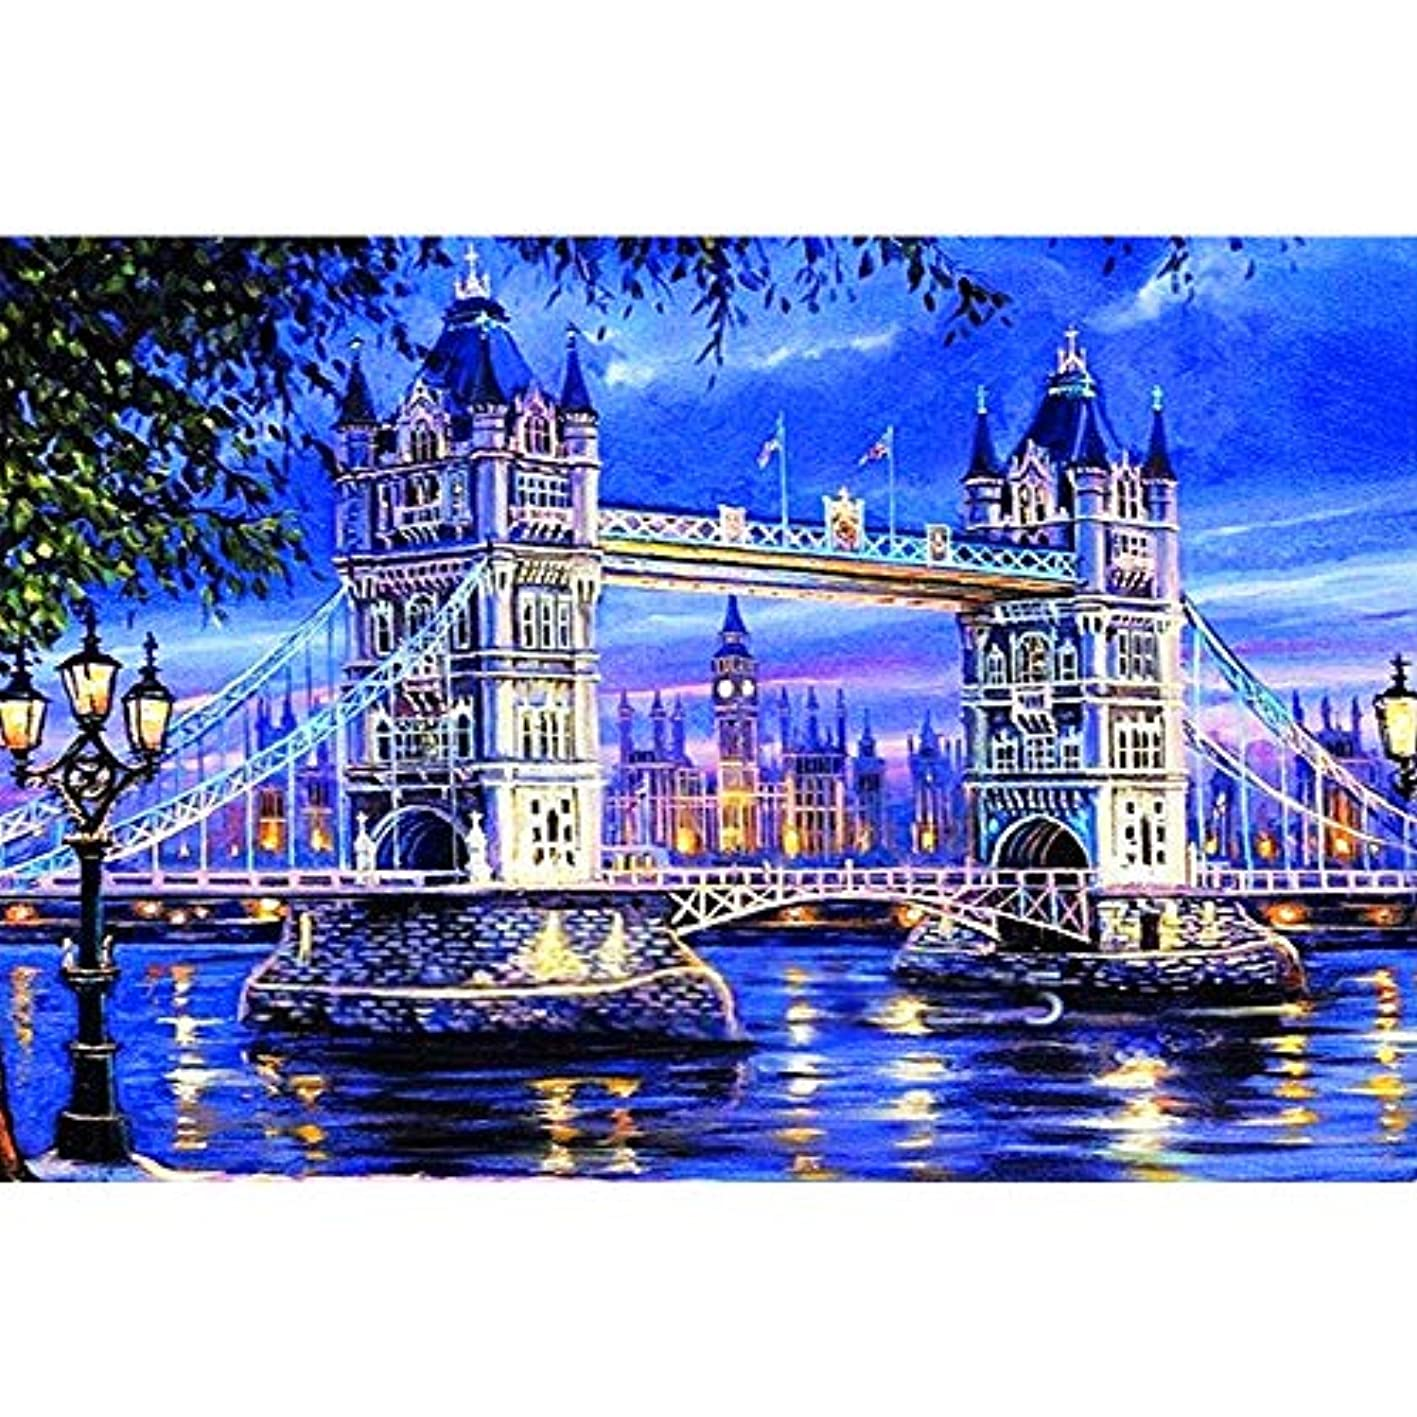 DIY Embroidery Bridge Castle 5D Full Drill Diamond Painting Cross Stitch Craft Kit Wall Stickers for Living Room Decoration nmkvnqdzkgn053